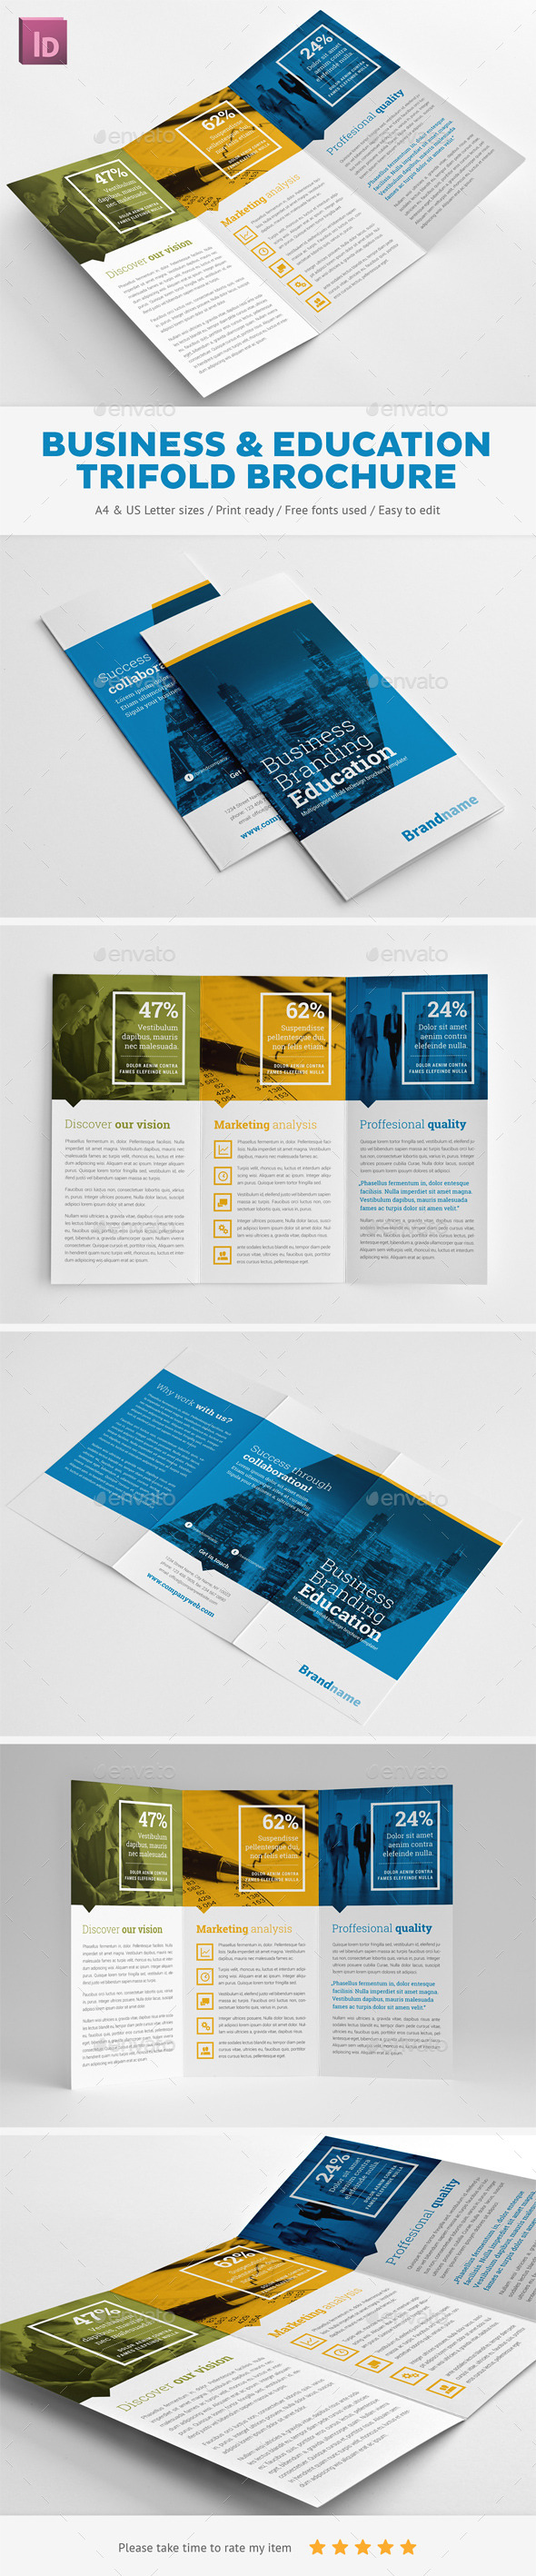 GraphicRiver Business Branding & Education Trifold Brochure 11246190